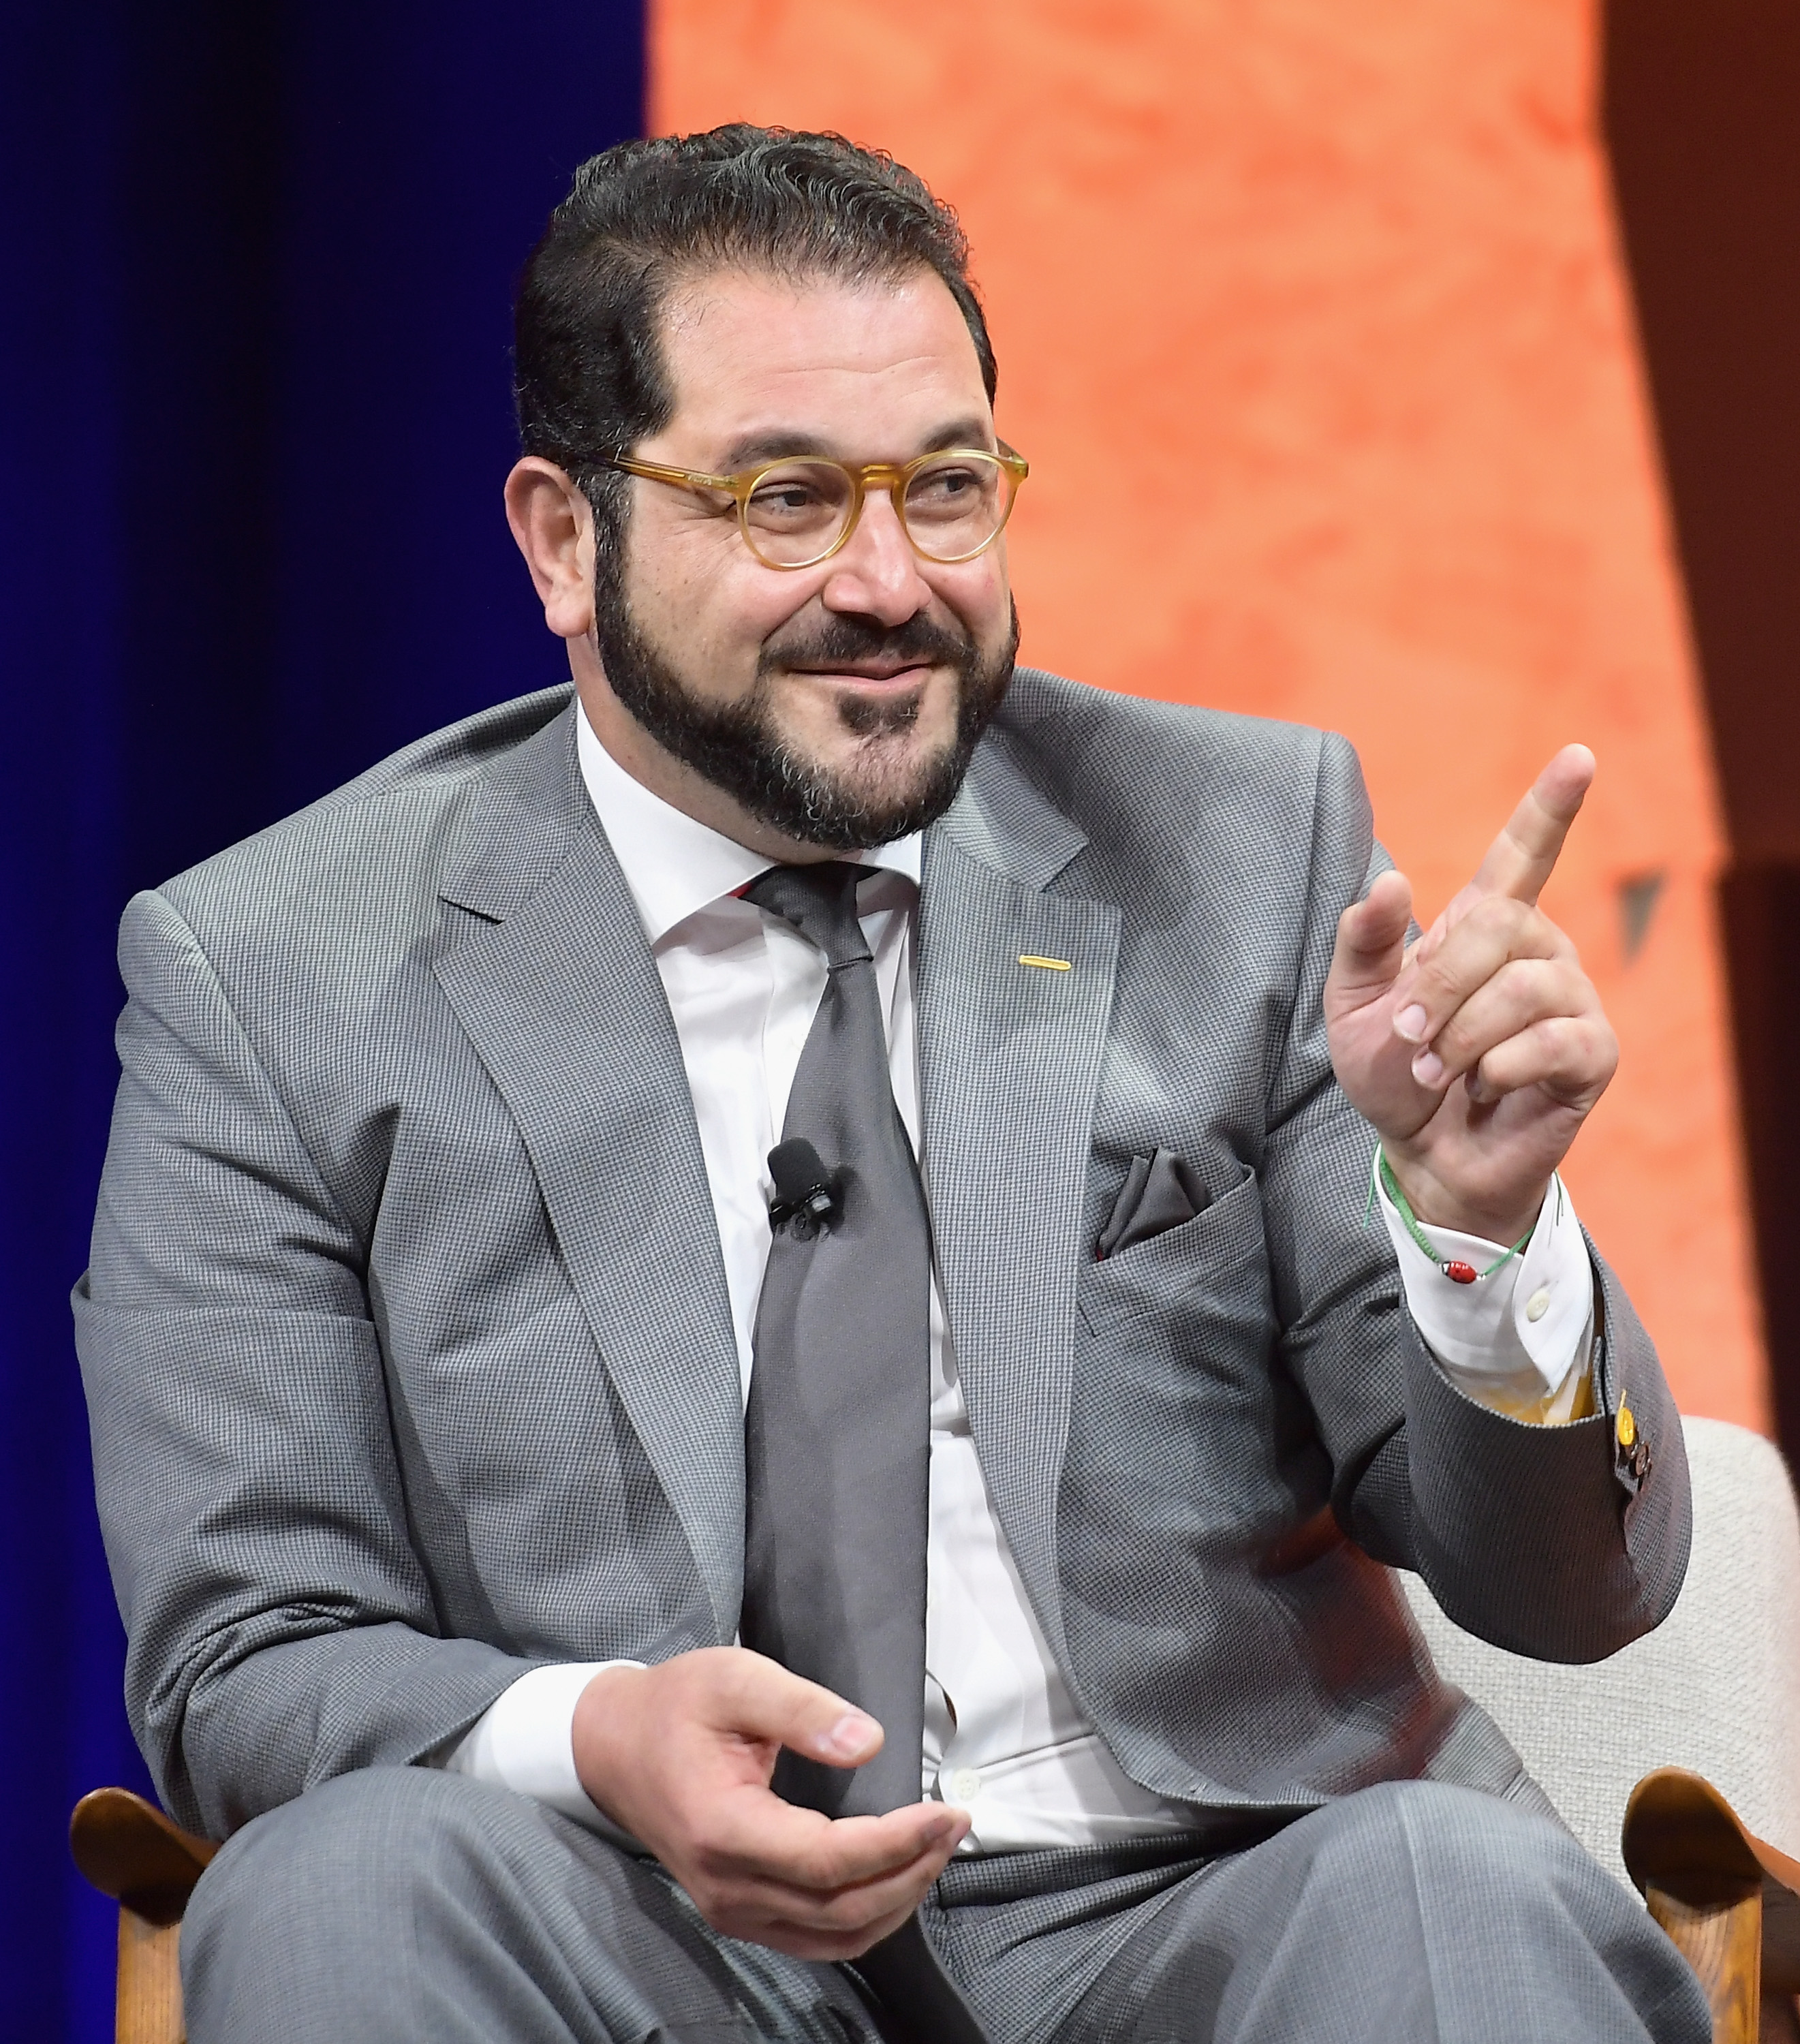 Co-Founder and Managing Director of Sherpa Capital Shervin Pishevar speaks onstage during Vanity Fair New Establishment Summit Beverly Hills, Calif. on Oct. 3, 2017.